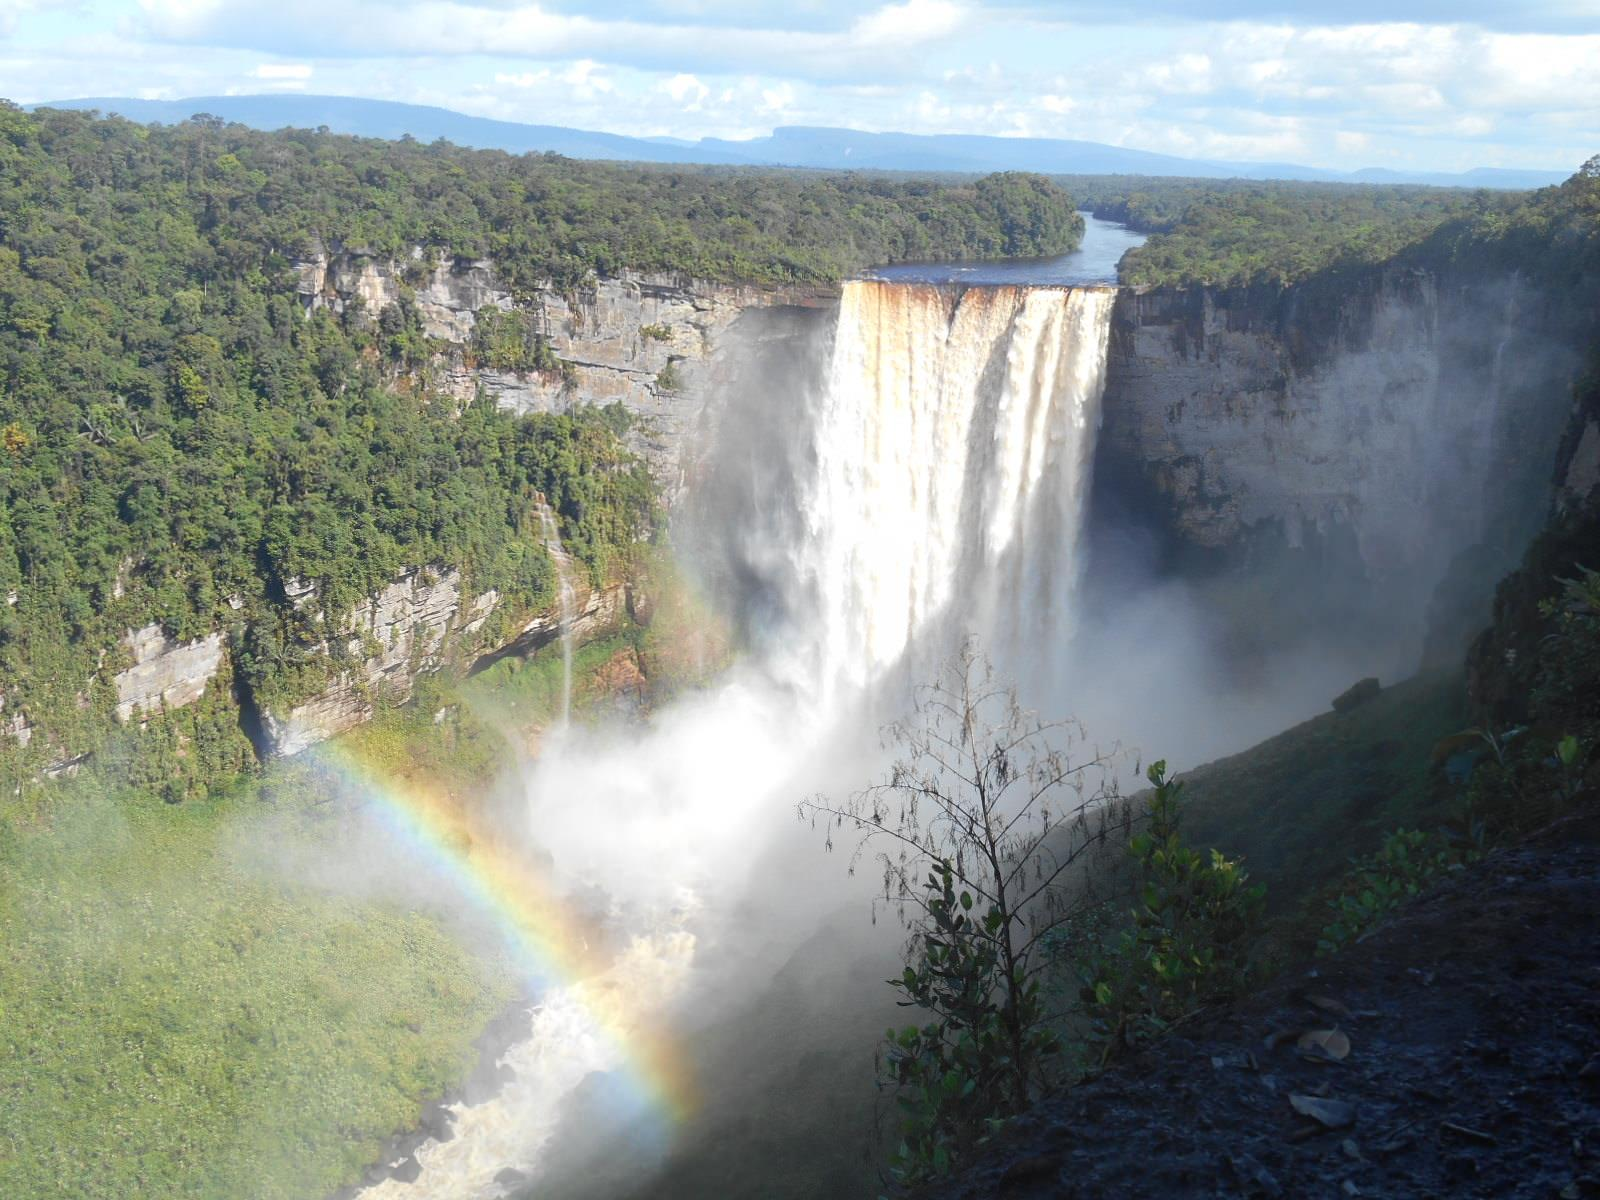 Visiting Kaieteur Falls Guyana: The Highest Waterfall in the World